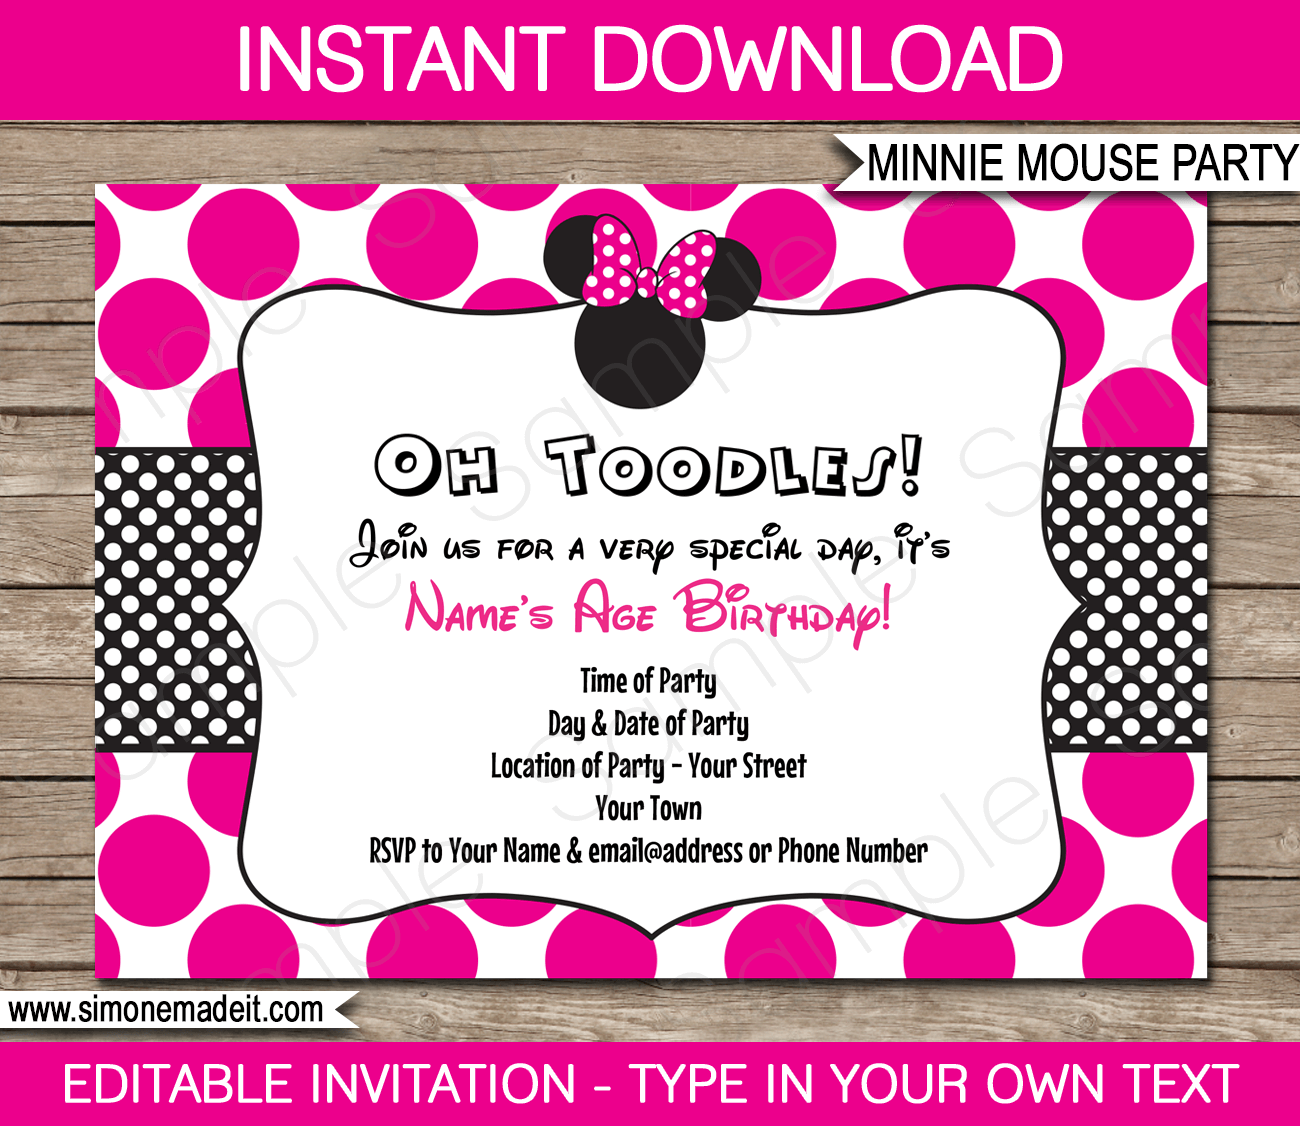 Minnie Mouse Party Invitations Template Birthday